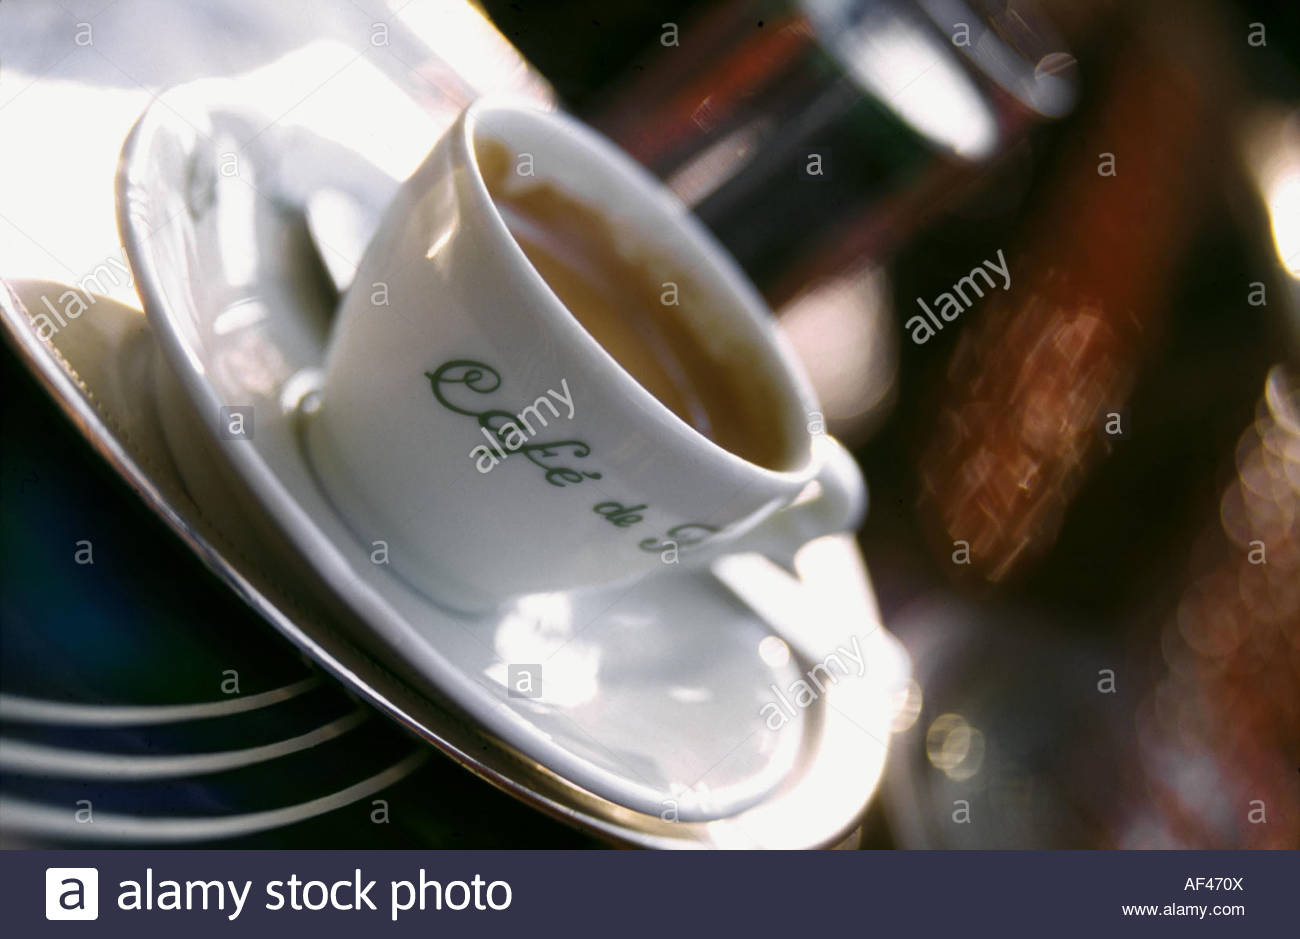 A cup of coffee on a table at the Café de Flore, Paris (1) Stock Photo